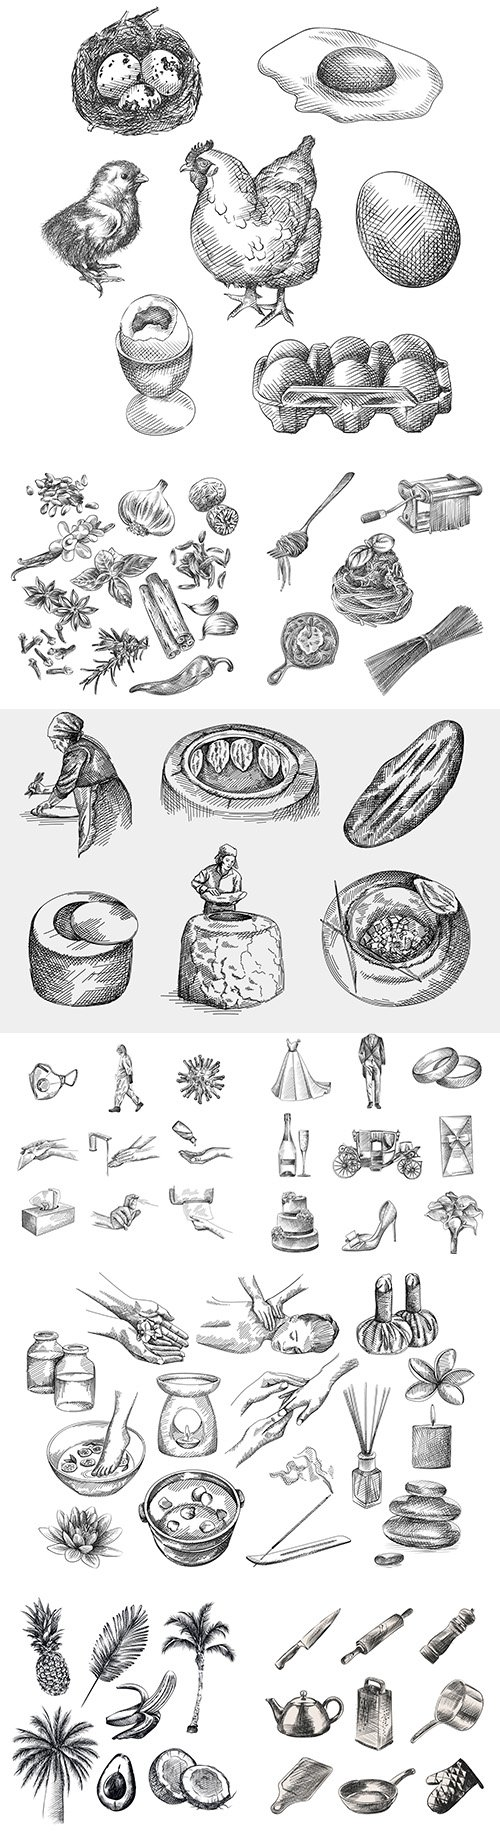 Hand-drawn sketches design vector illustrations